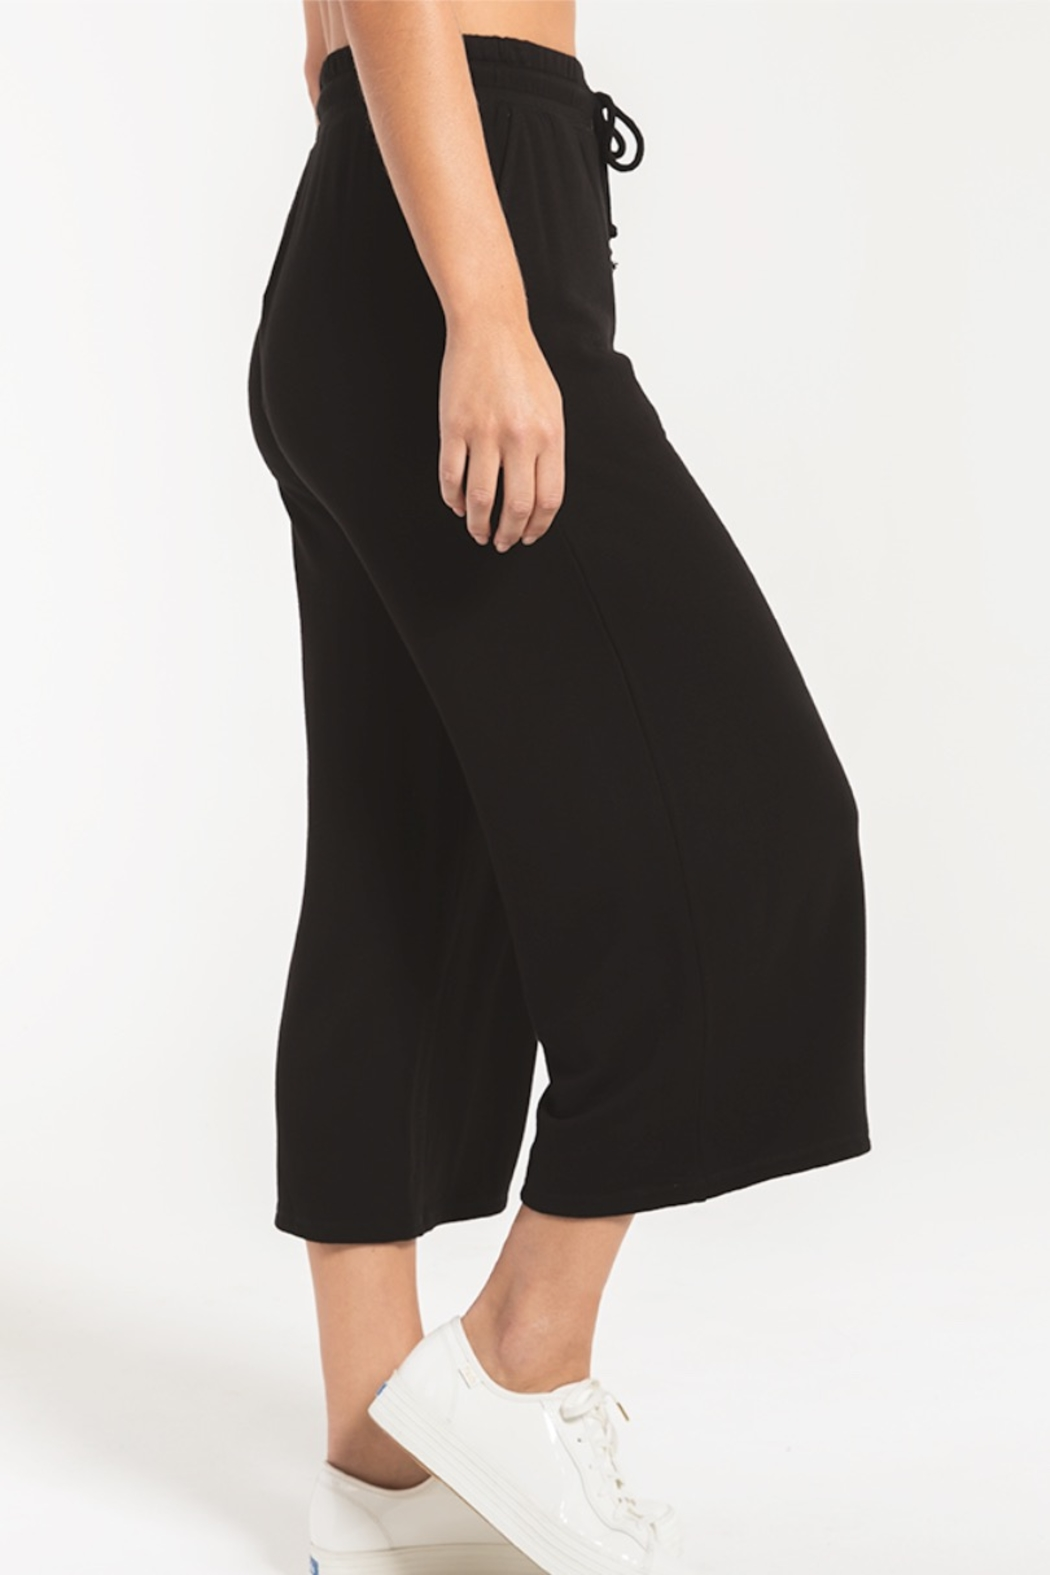 z supply The Premium Fleece Crop Pant - Back Cropped Image